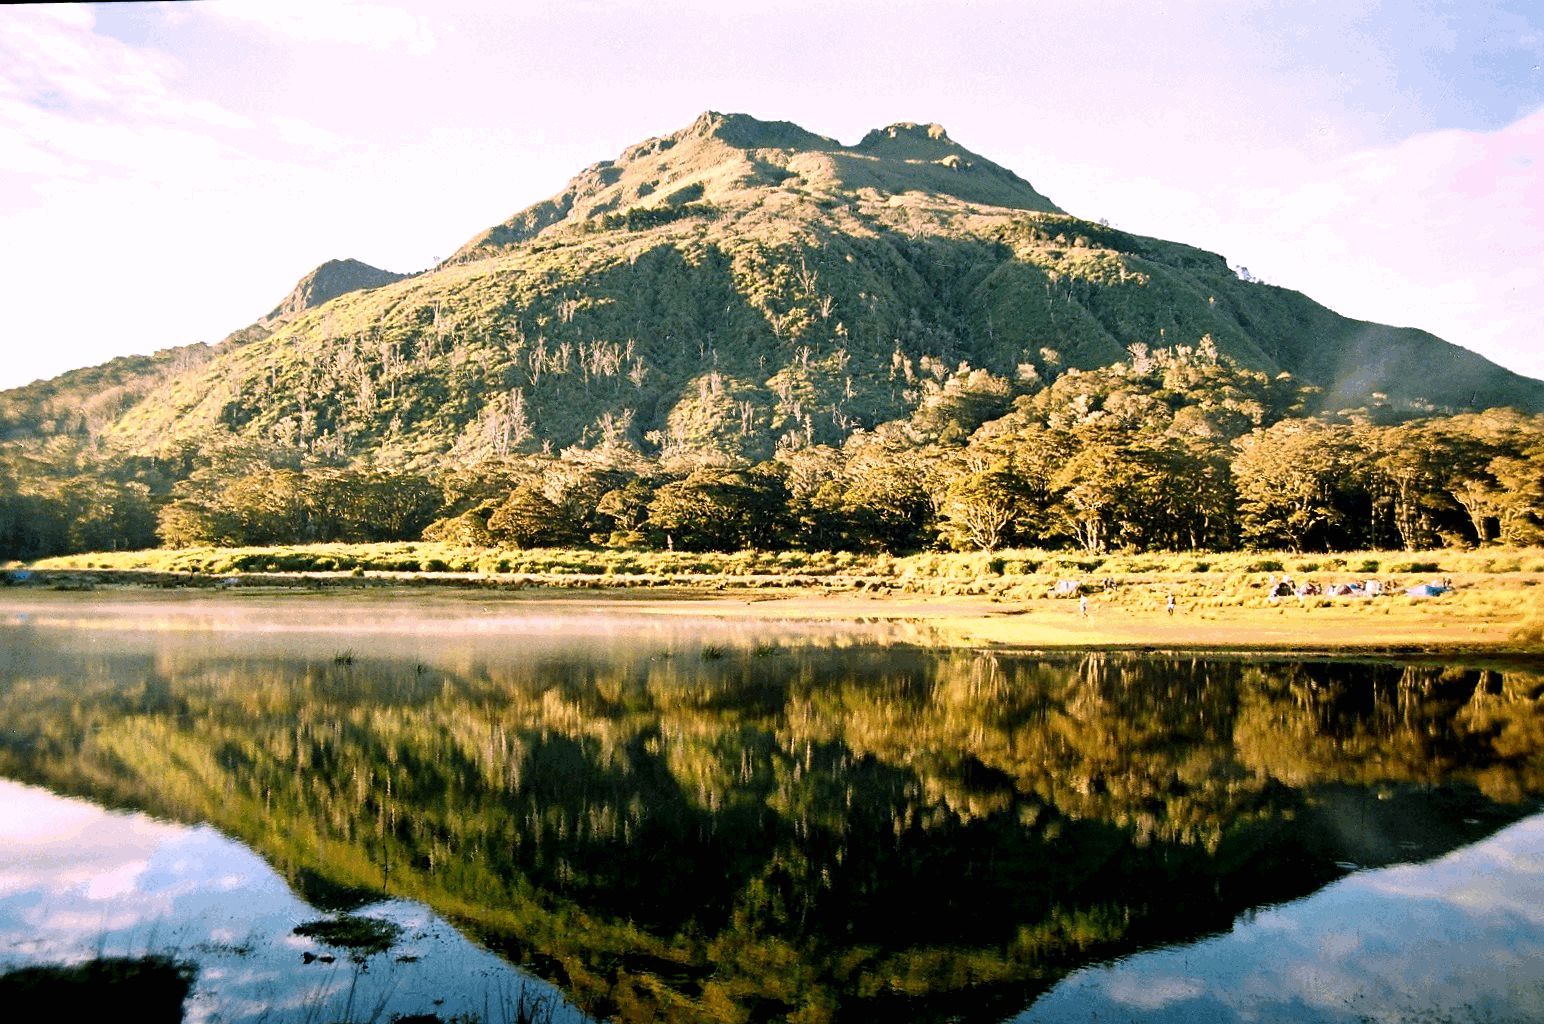 Mountains Philippines - Mount Apo